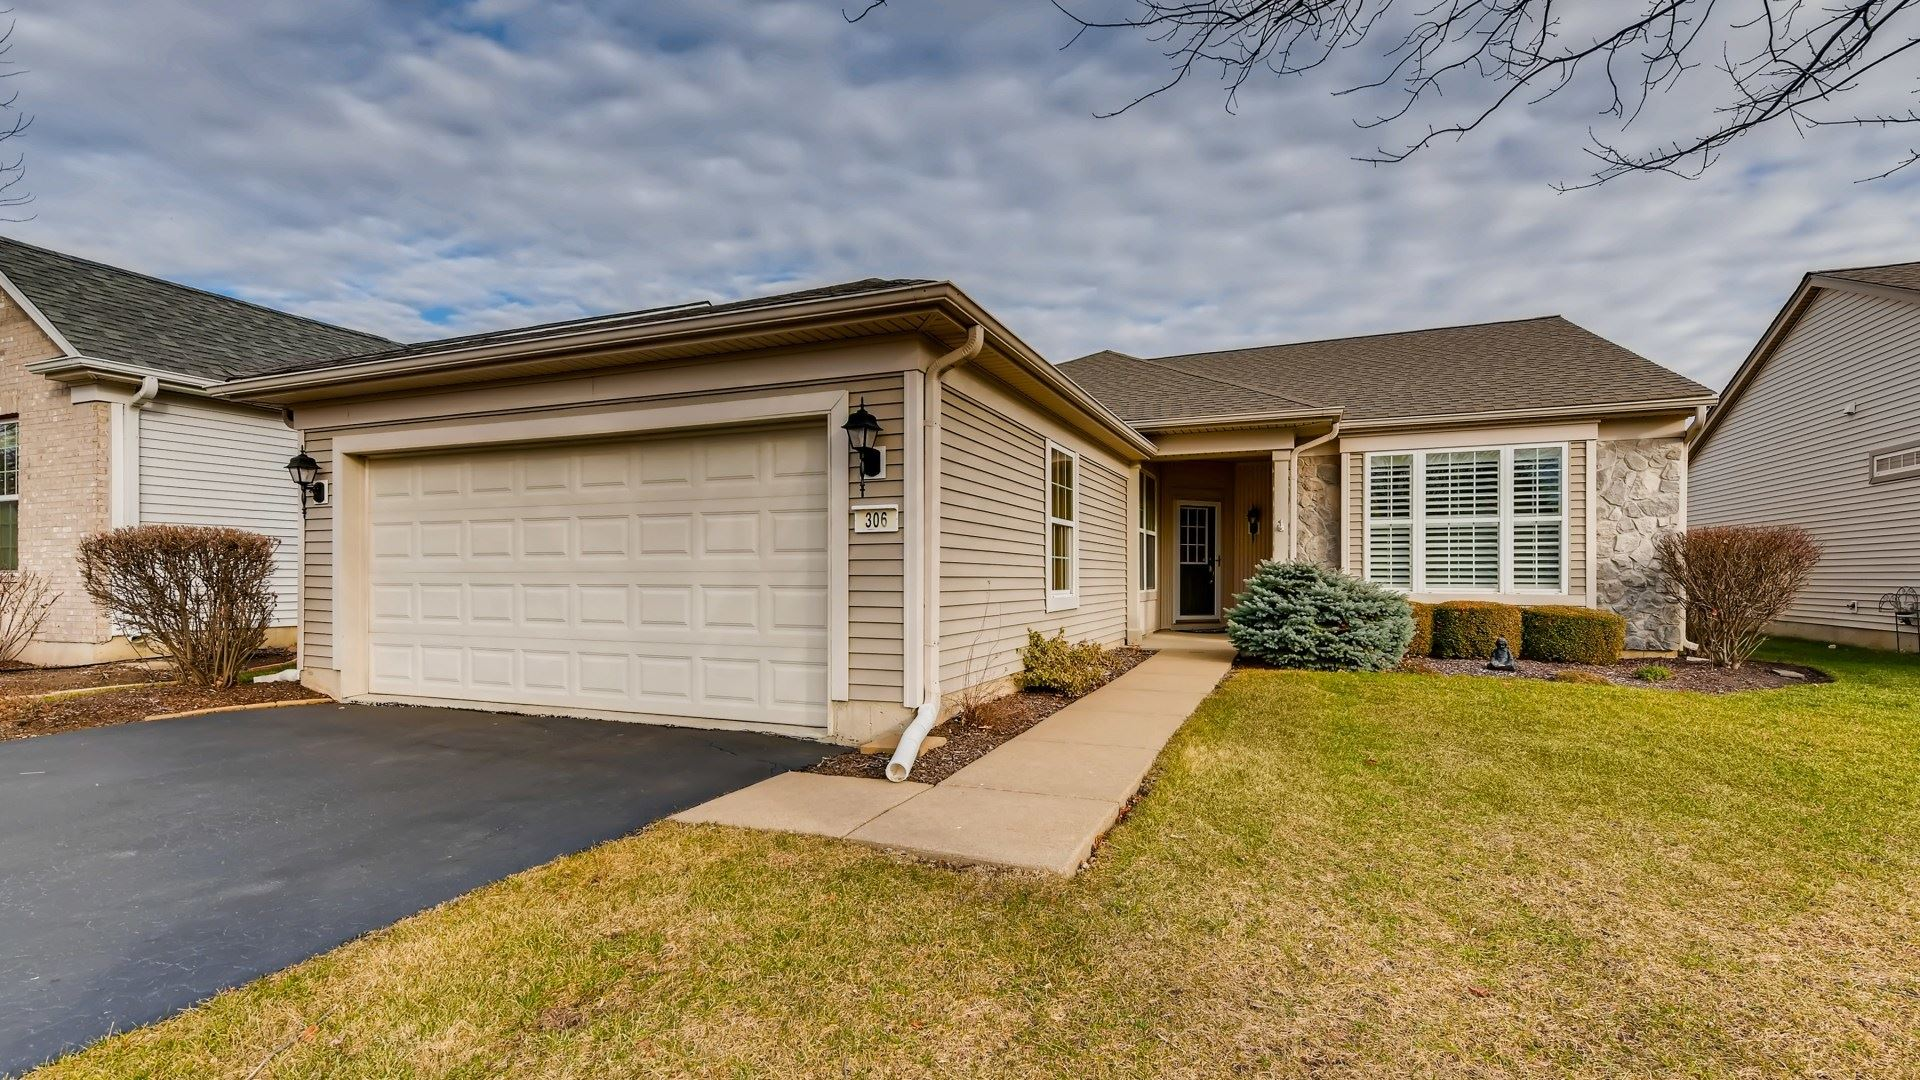 Photo of 306 National Drive, Shorewood, IL 60404 (MLS # 10956802)